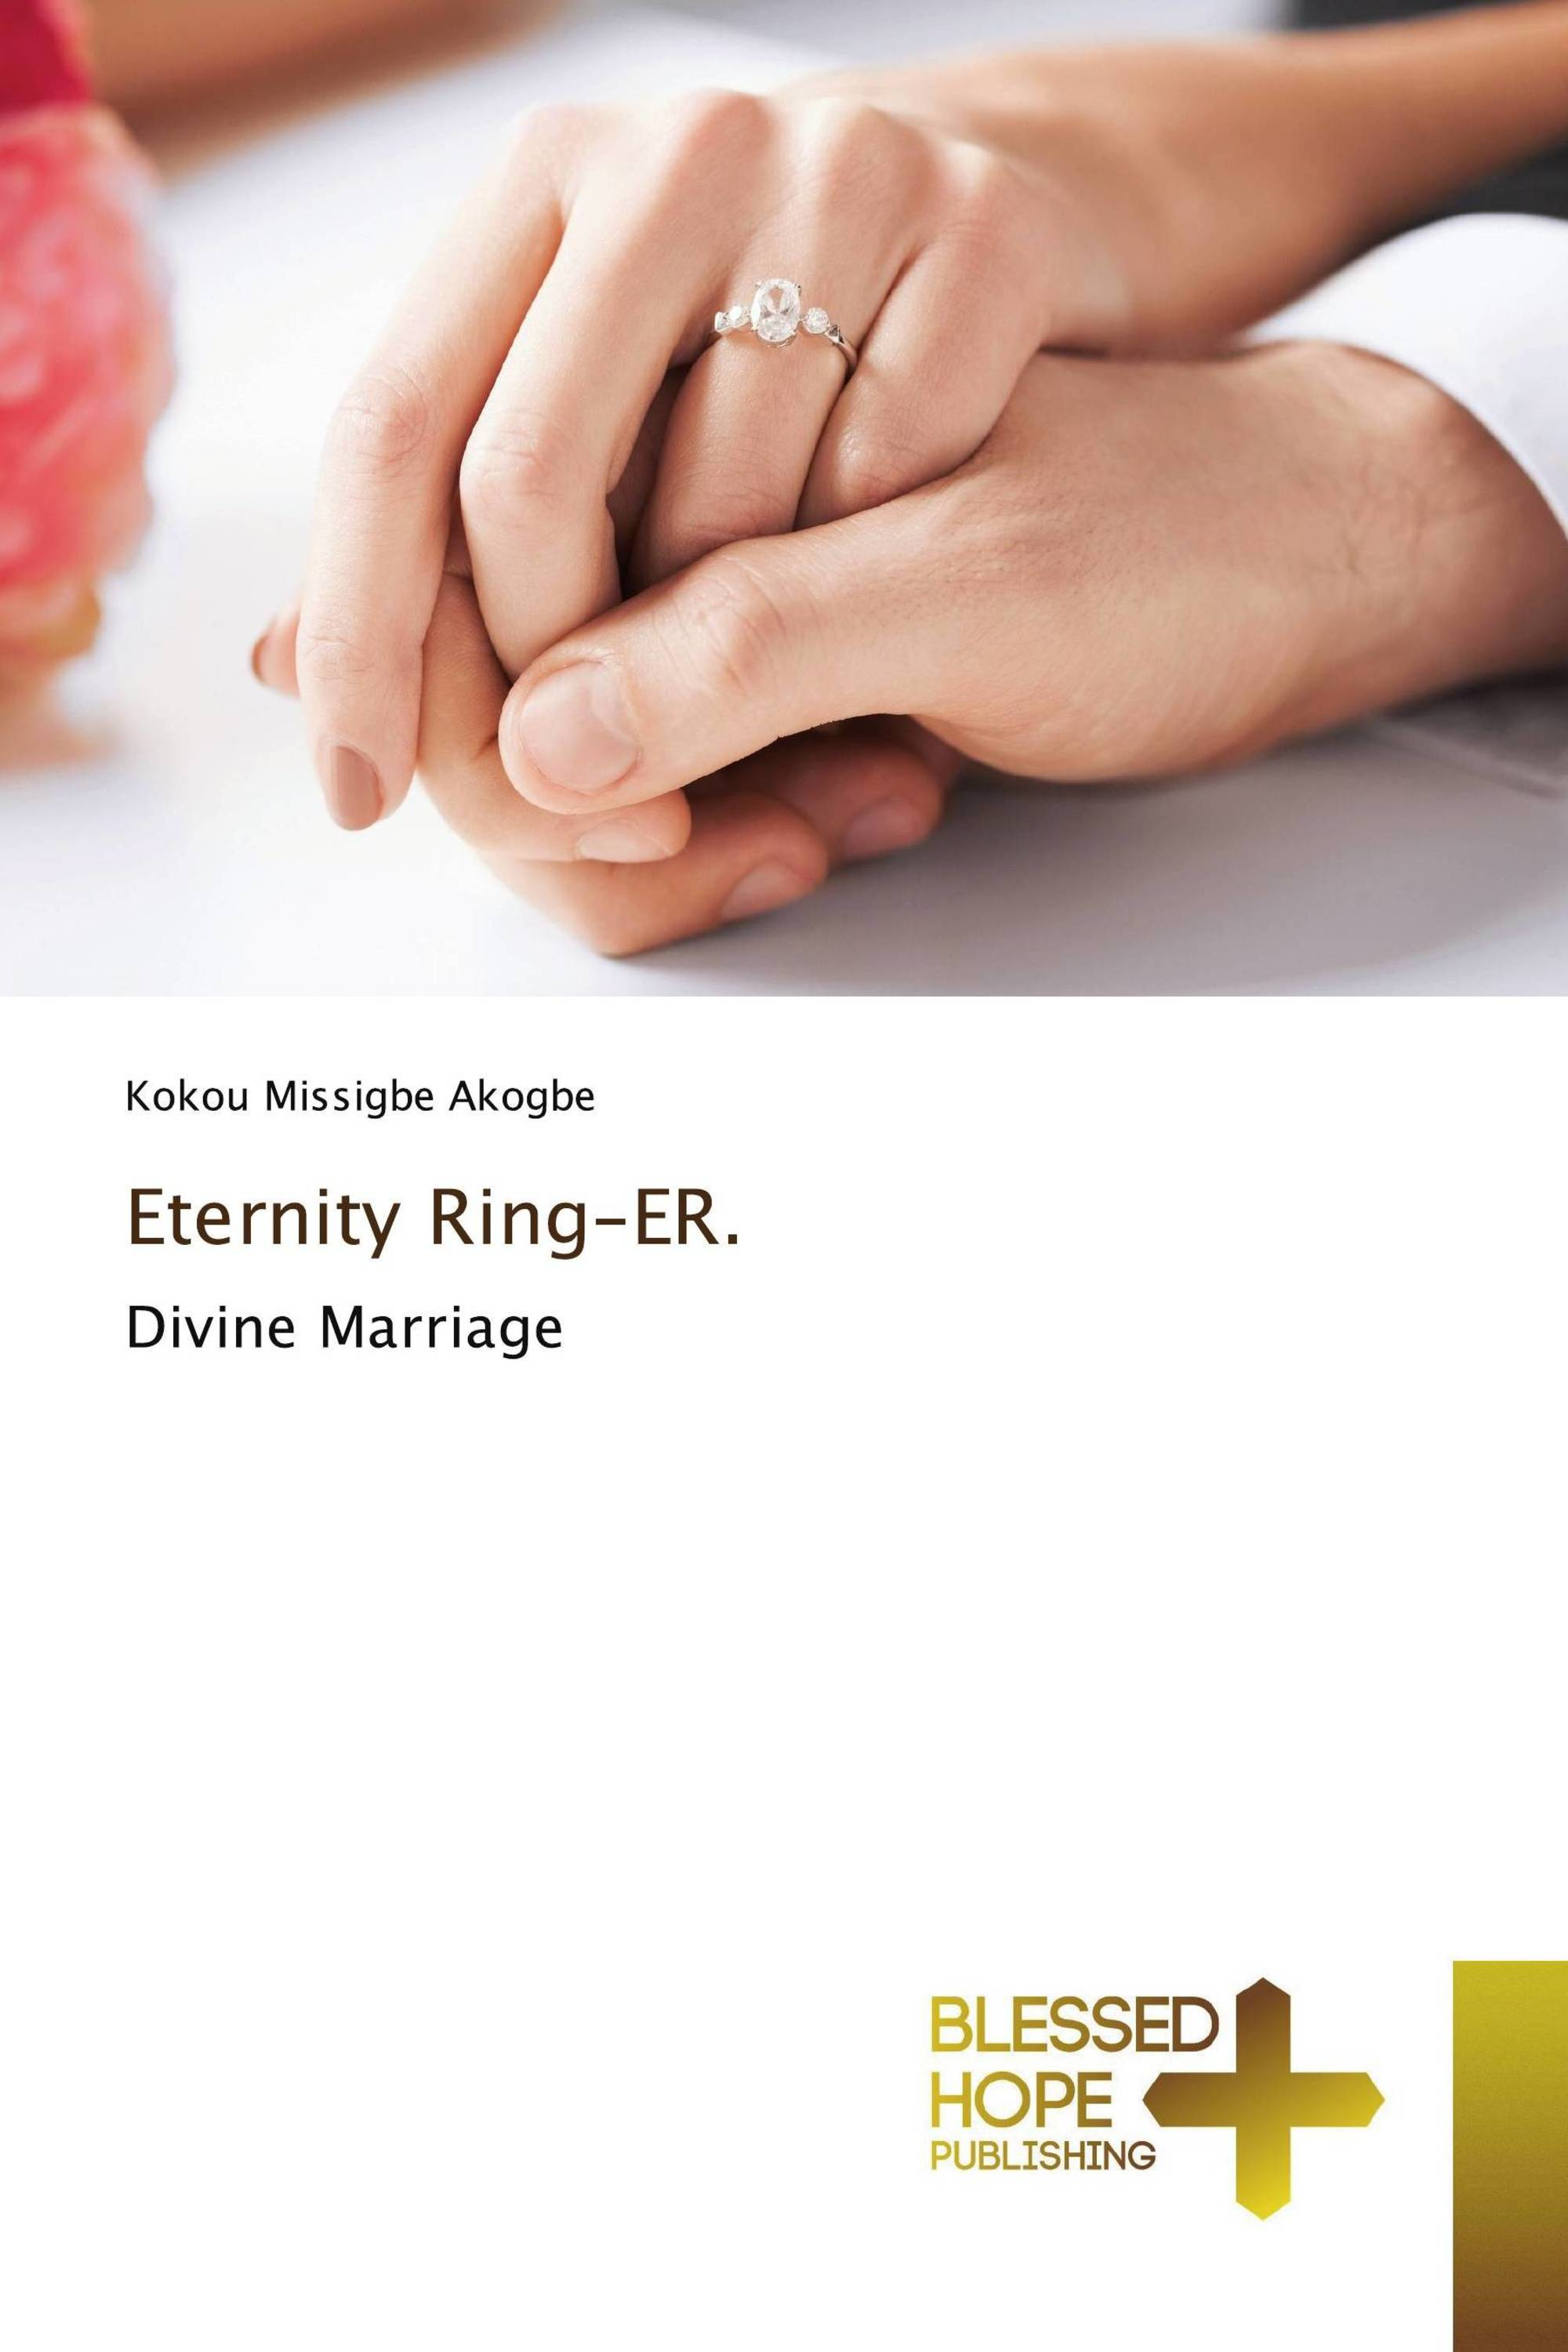 Eternity Ring-ER.